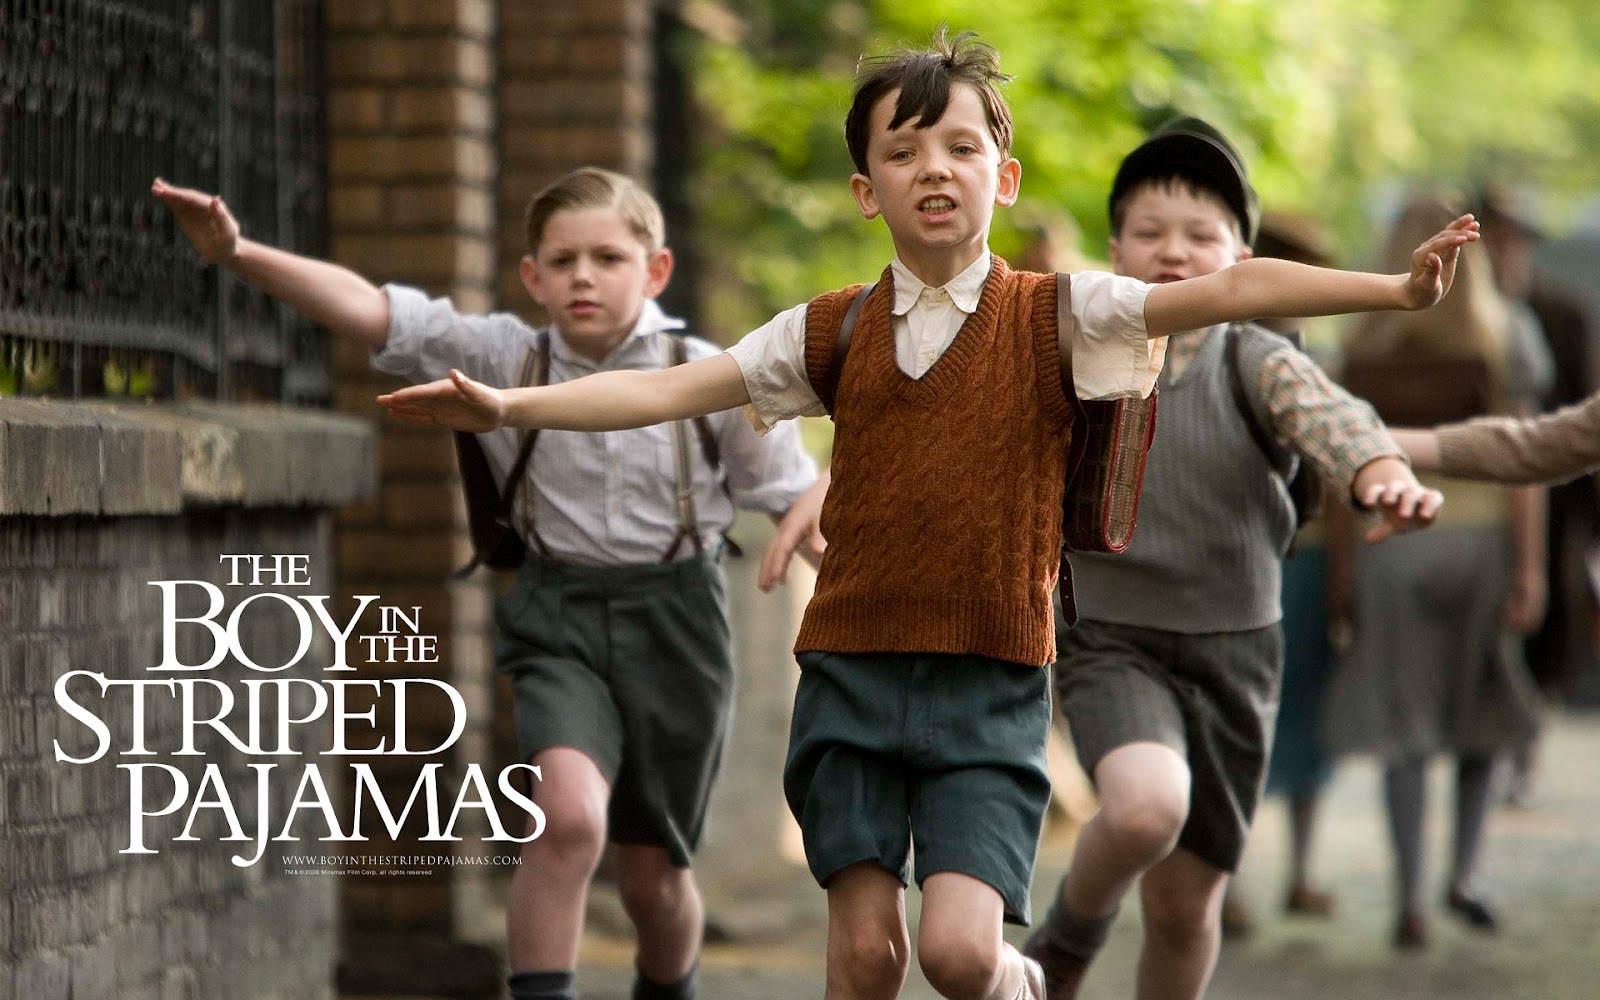 passion for movies the boy in the striped pyjamas holocaust the boy in the striped pyjamas holocaust through the eyes of children